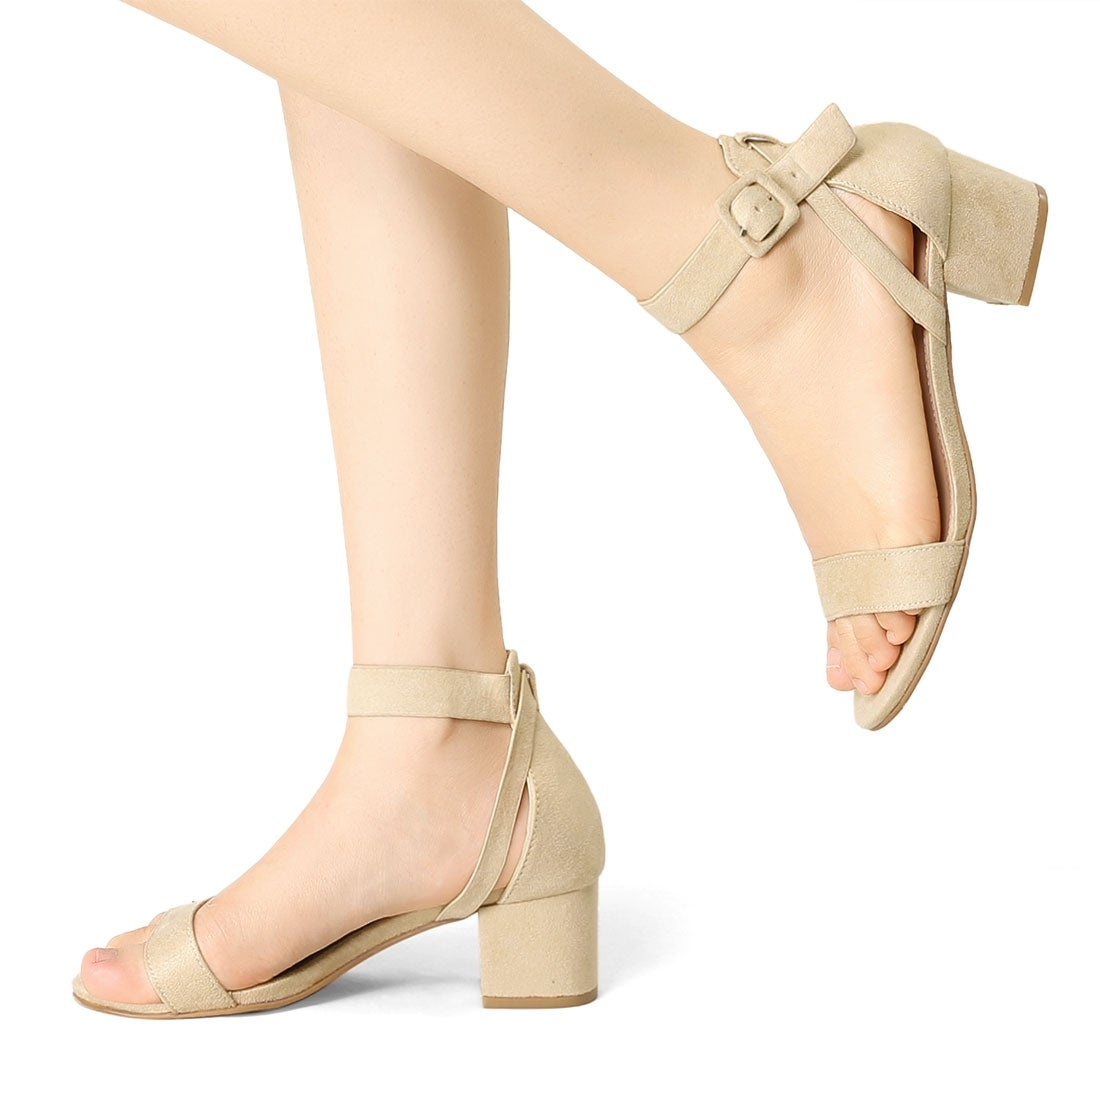 Allegra K Womens High Chunky Heel Buckle Ankle Strap Sandals